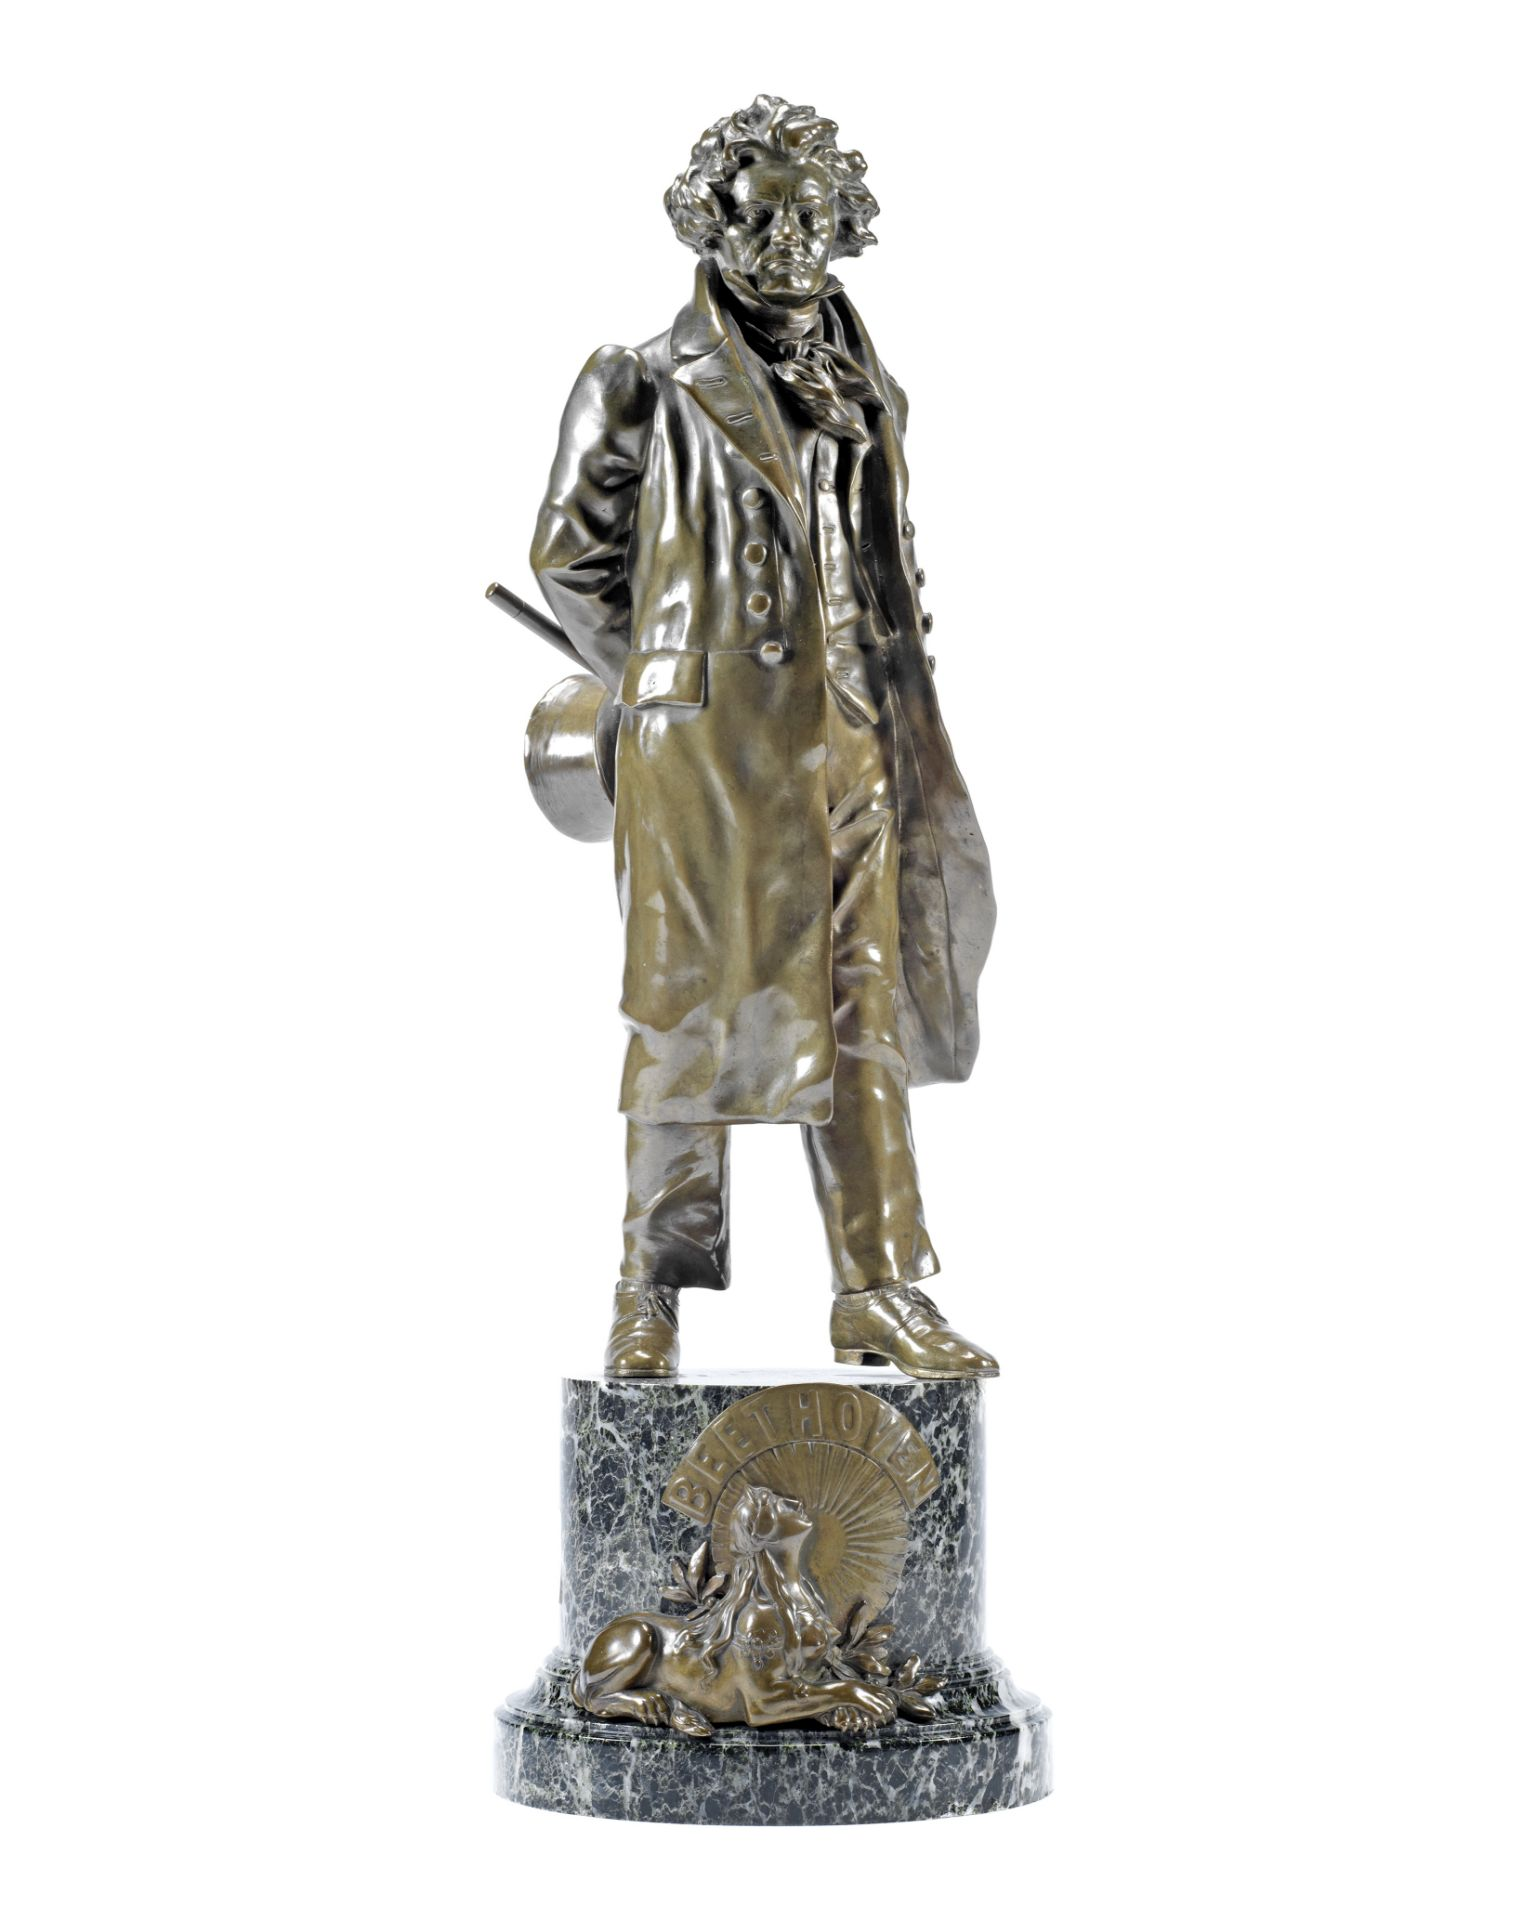 Los 169 - A late 19th/early 20th century patinated bronze figure of Beethoven probably German or Austrian